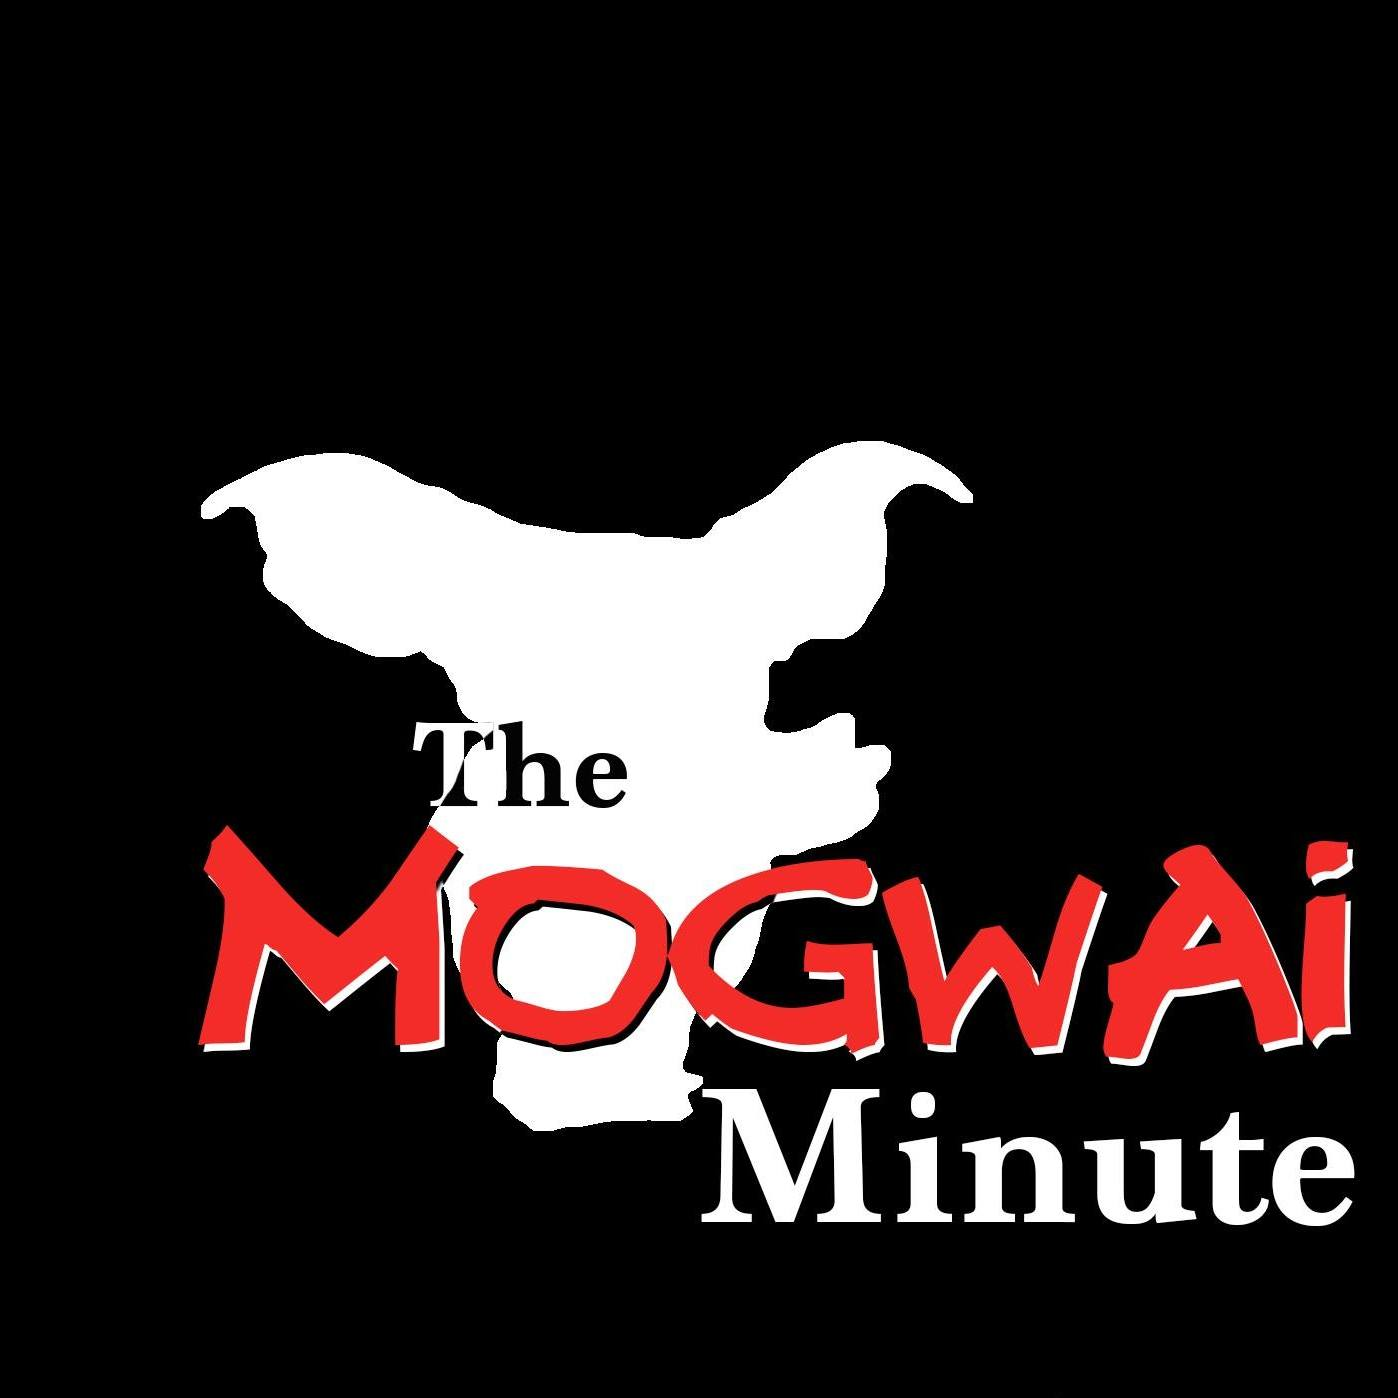 The Mogwai Minute